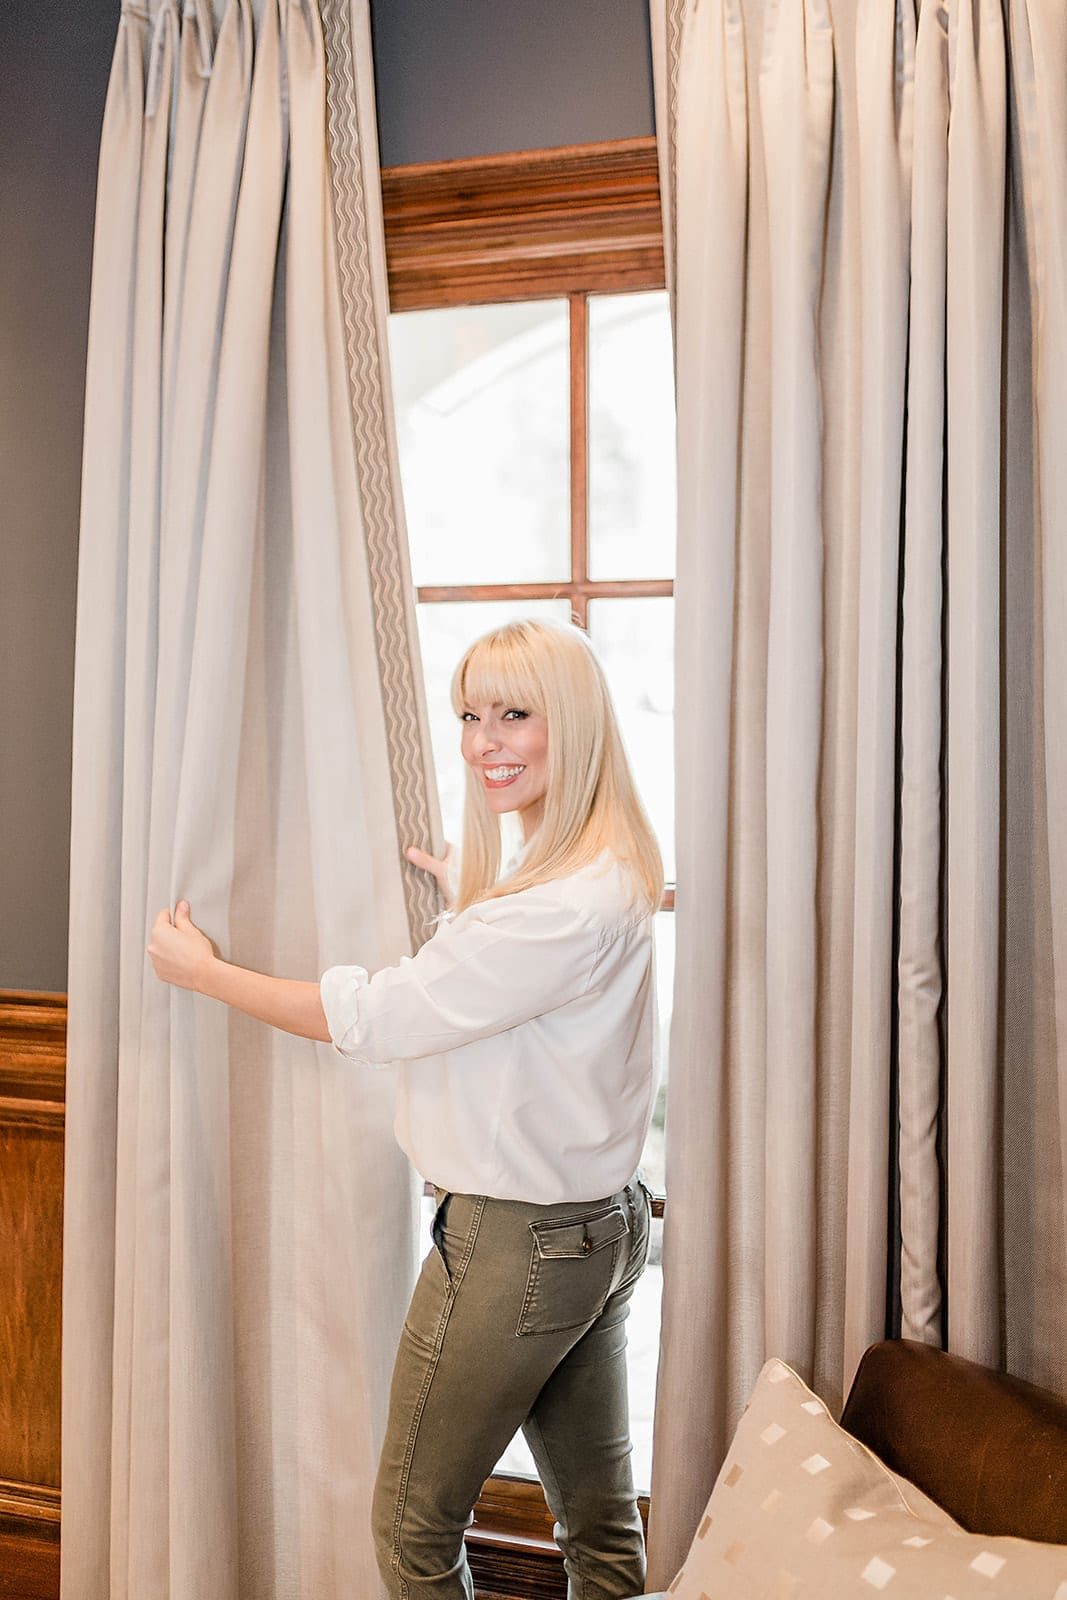 Lifestyle blogger Kelly Page, of bluegraygal, shows off her custom draperies made by Calico.